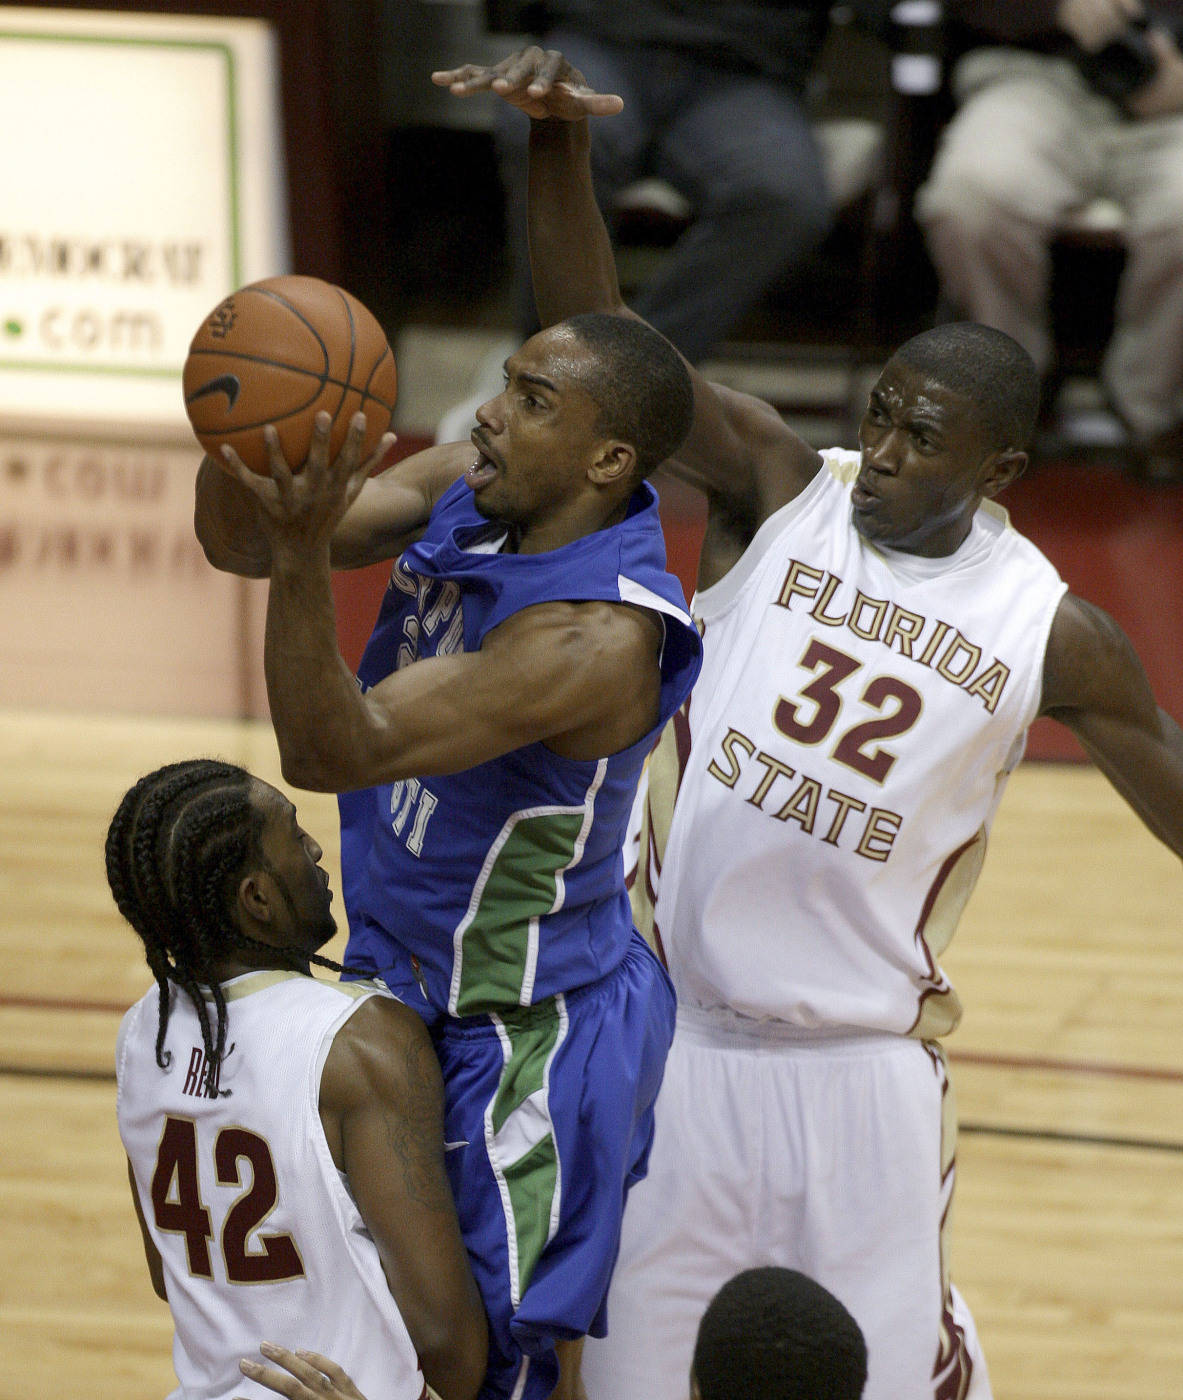 Texas A&M-Corpus Christi's Demond Watt, center, tries for a first-half layup between Florida State's Ryan Reid, left, and Solomon Alabi, right, during an NCAA college basketball game Monday, Jan. 4, 2010, in Tallahassee, Fla. (AP Photo/Phil Coale)